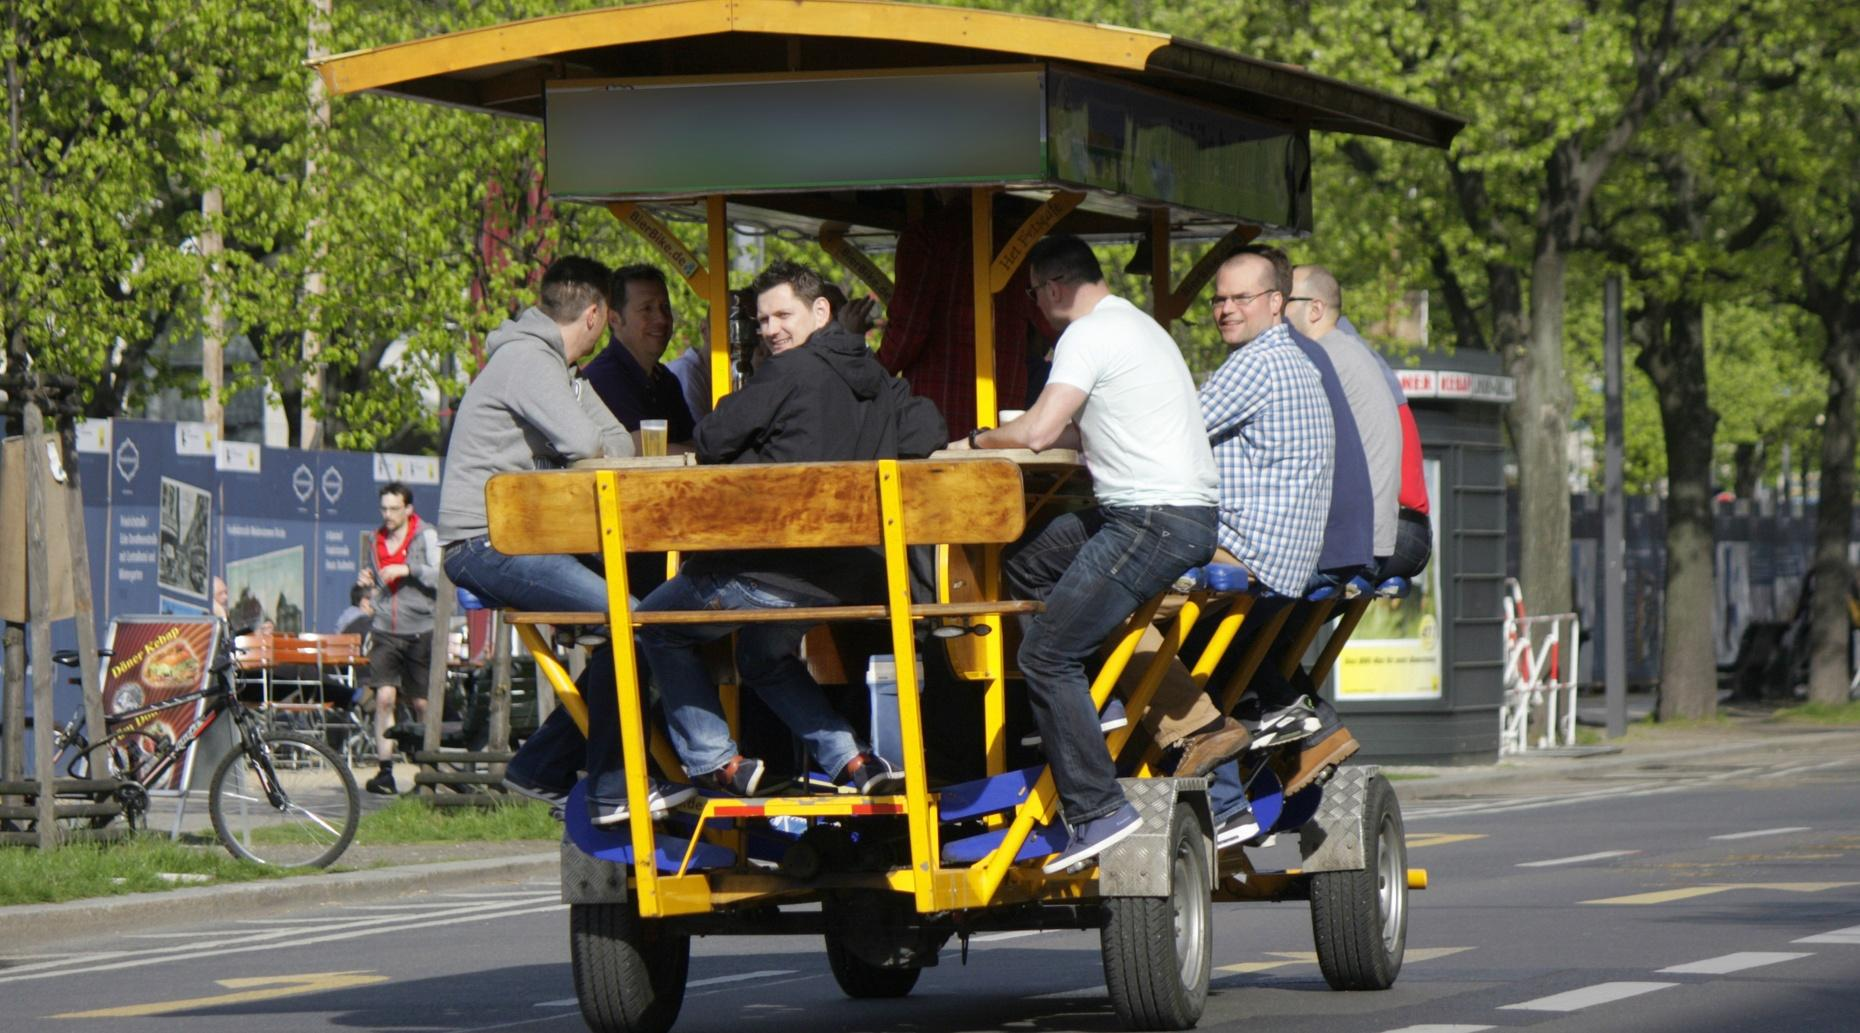 Craft Beer Pedal Trolley Tour in Ann Arbor